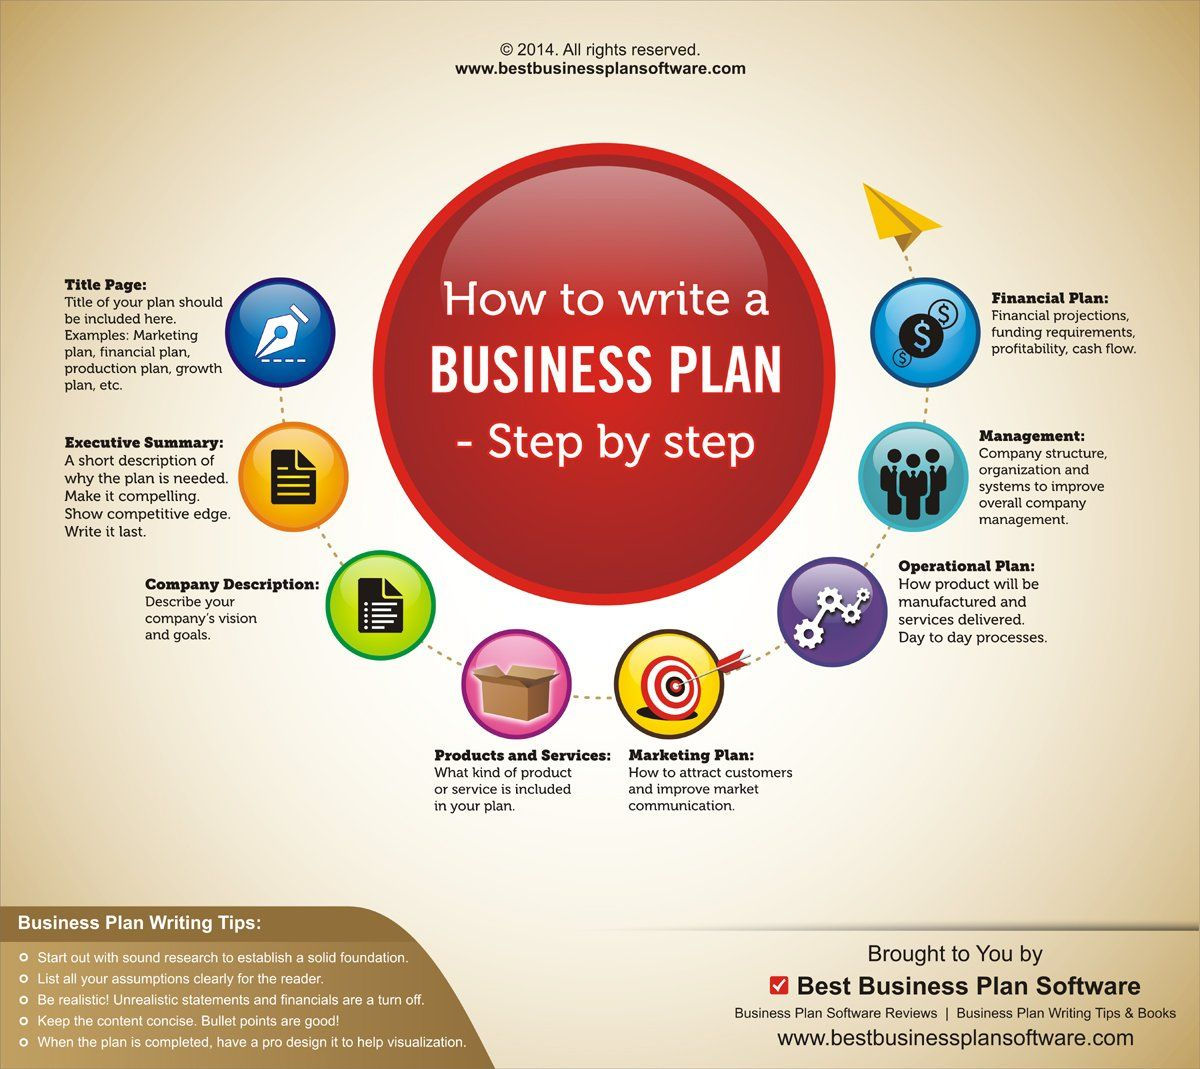 (12) Twitter Business plan infographic, Preparing a